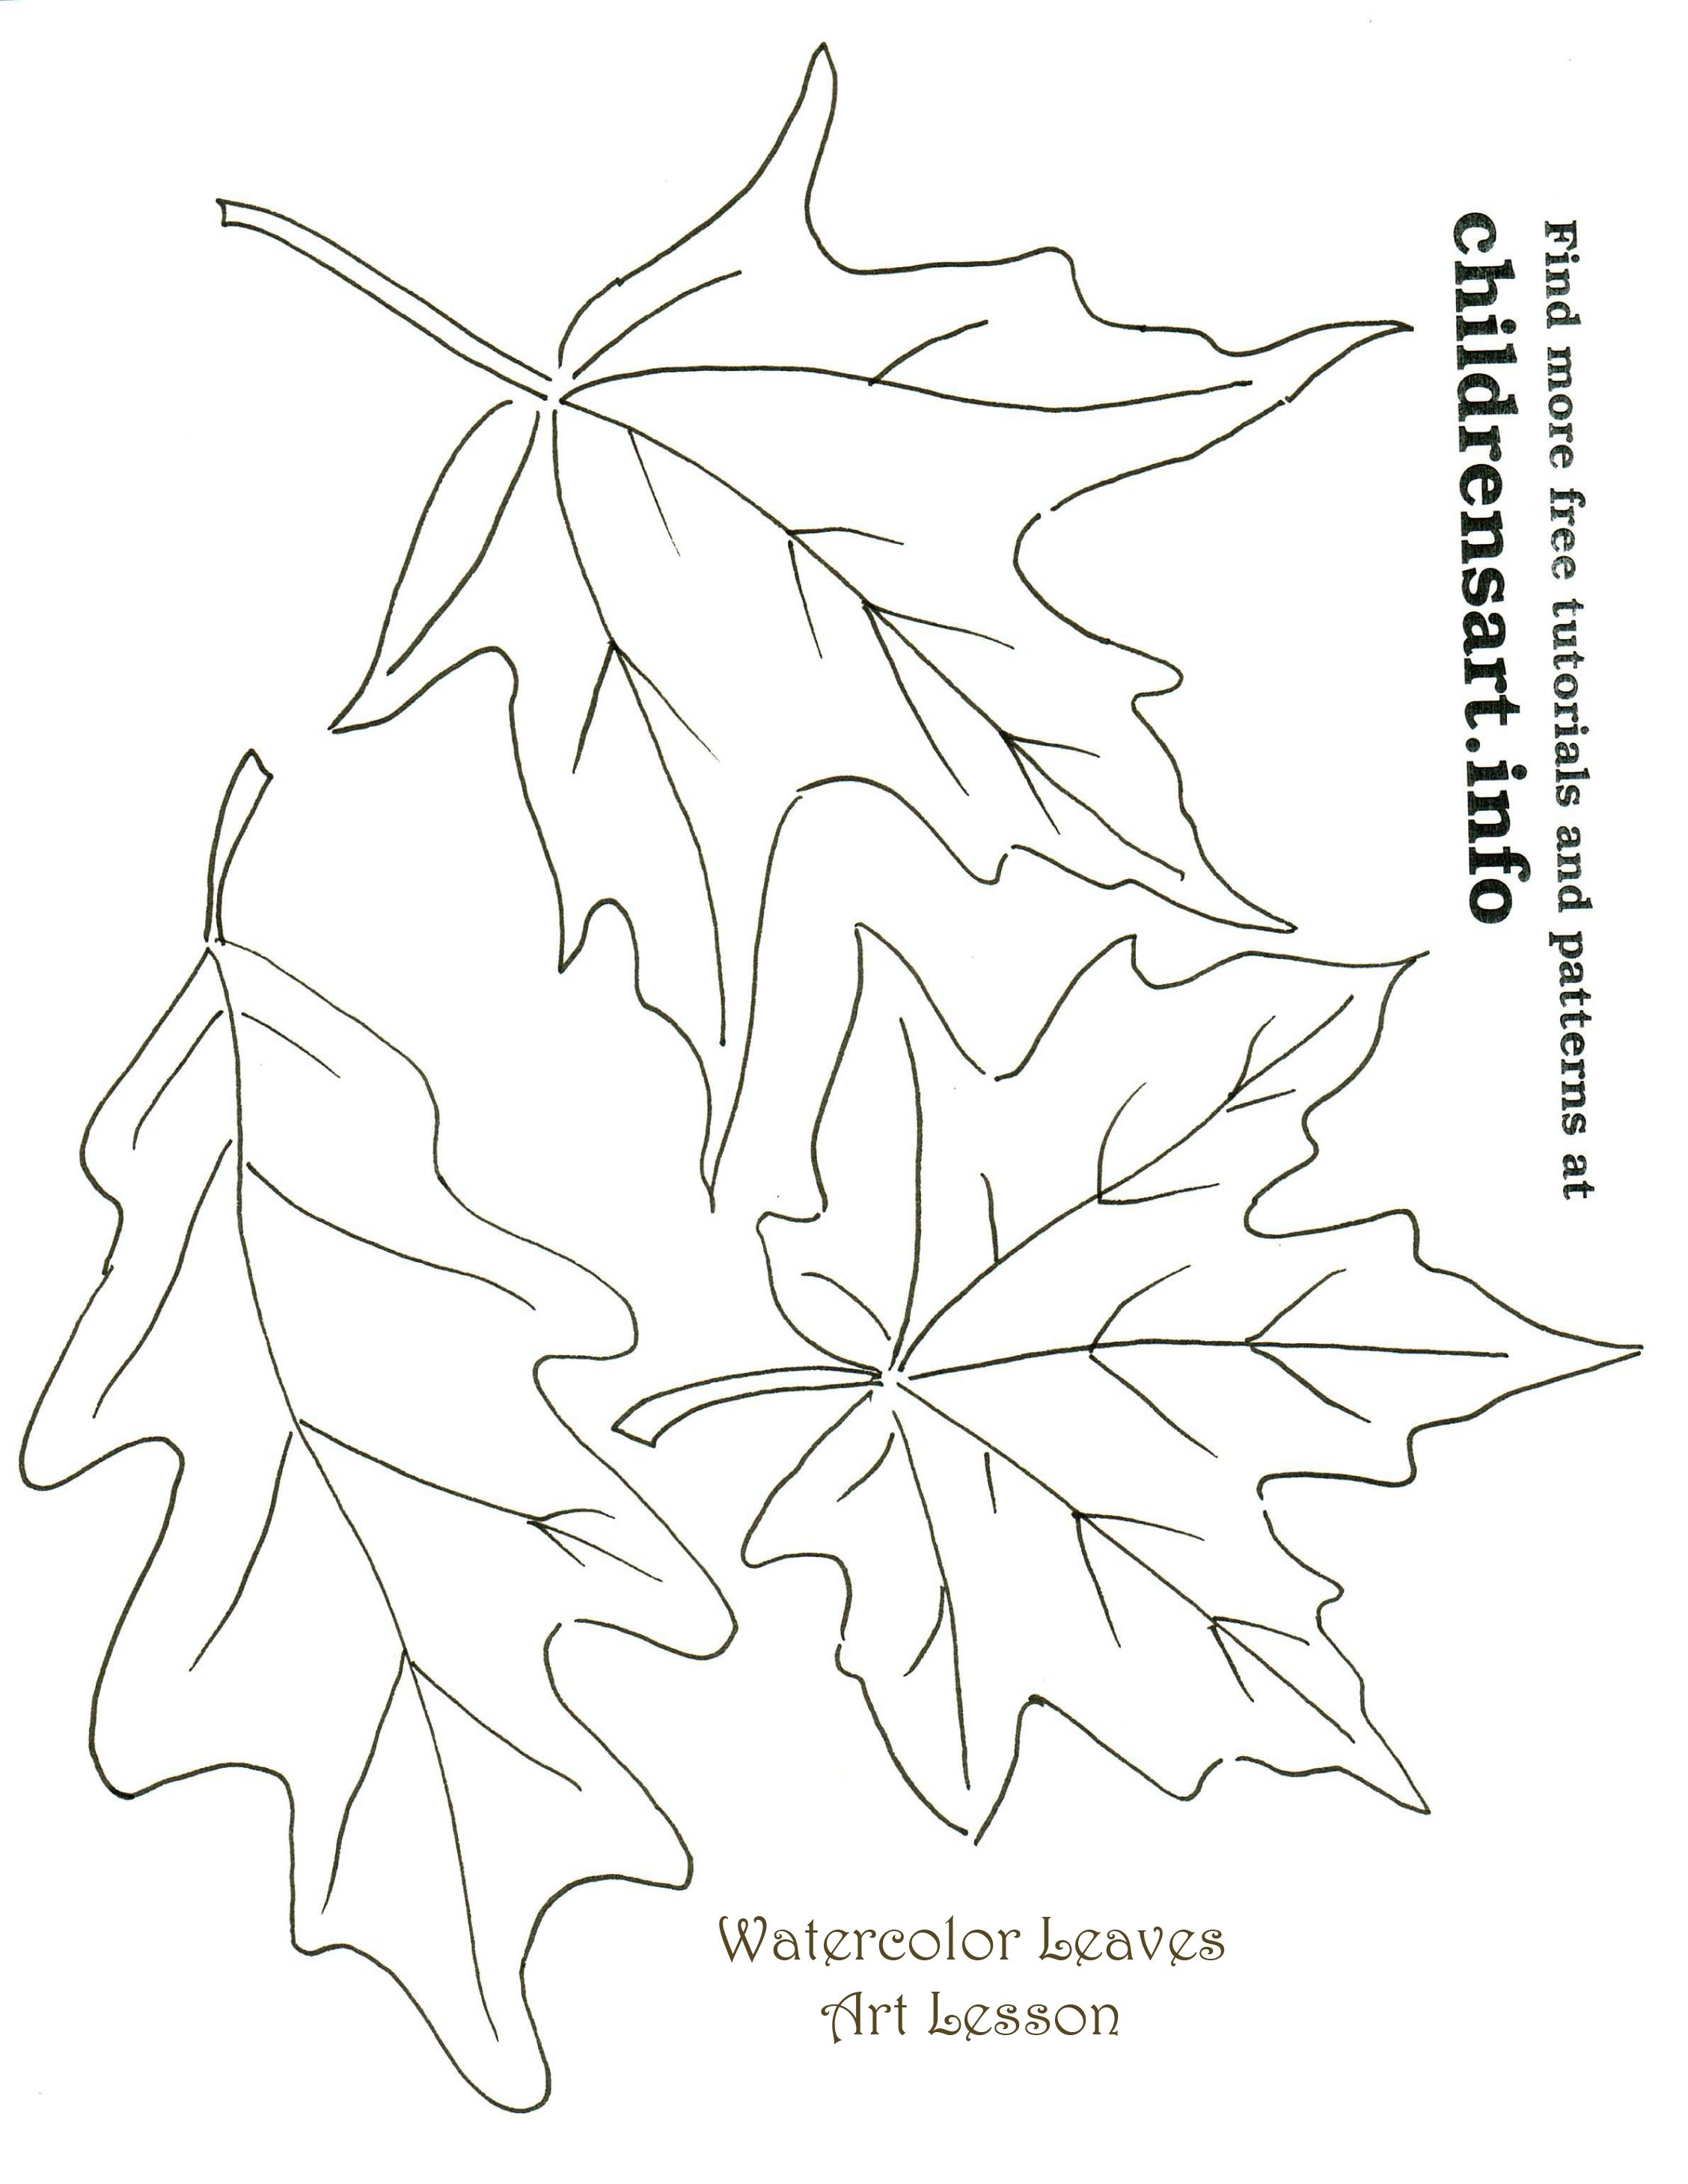 Autumn Leaves Watercolor Art Tutorial Templates | coloring pages ...